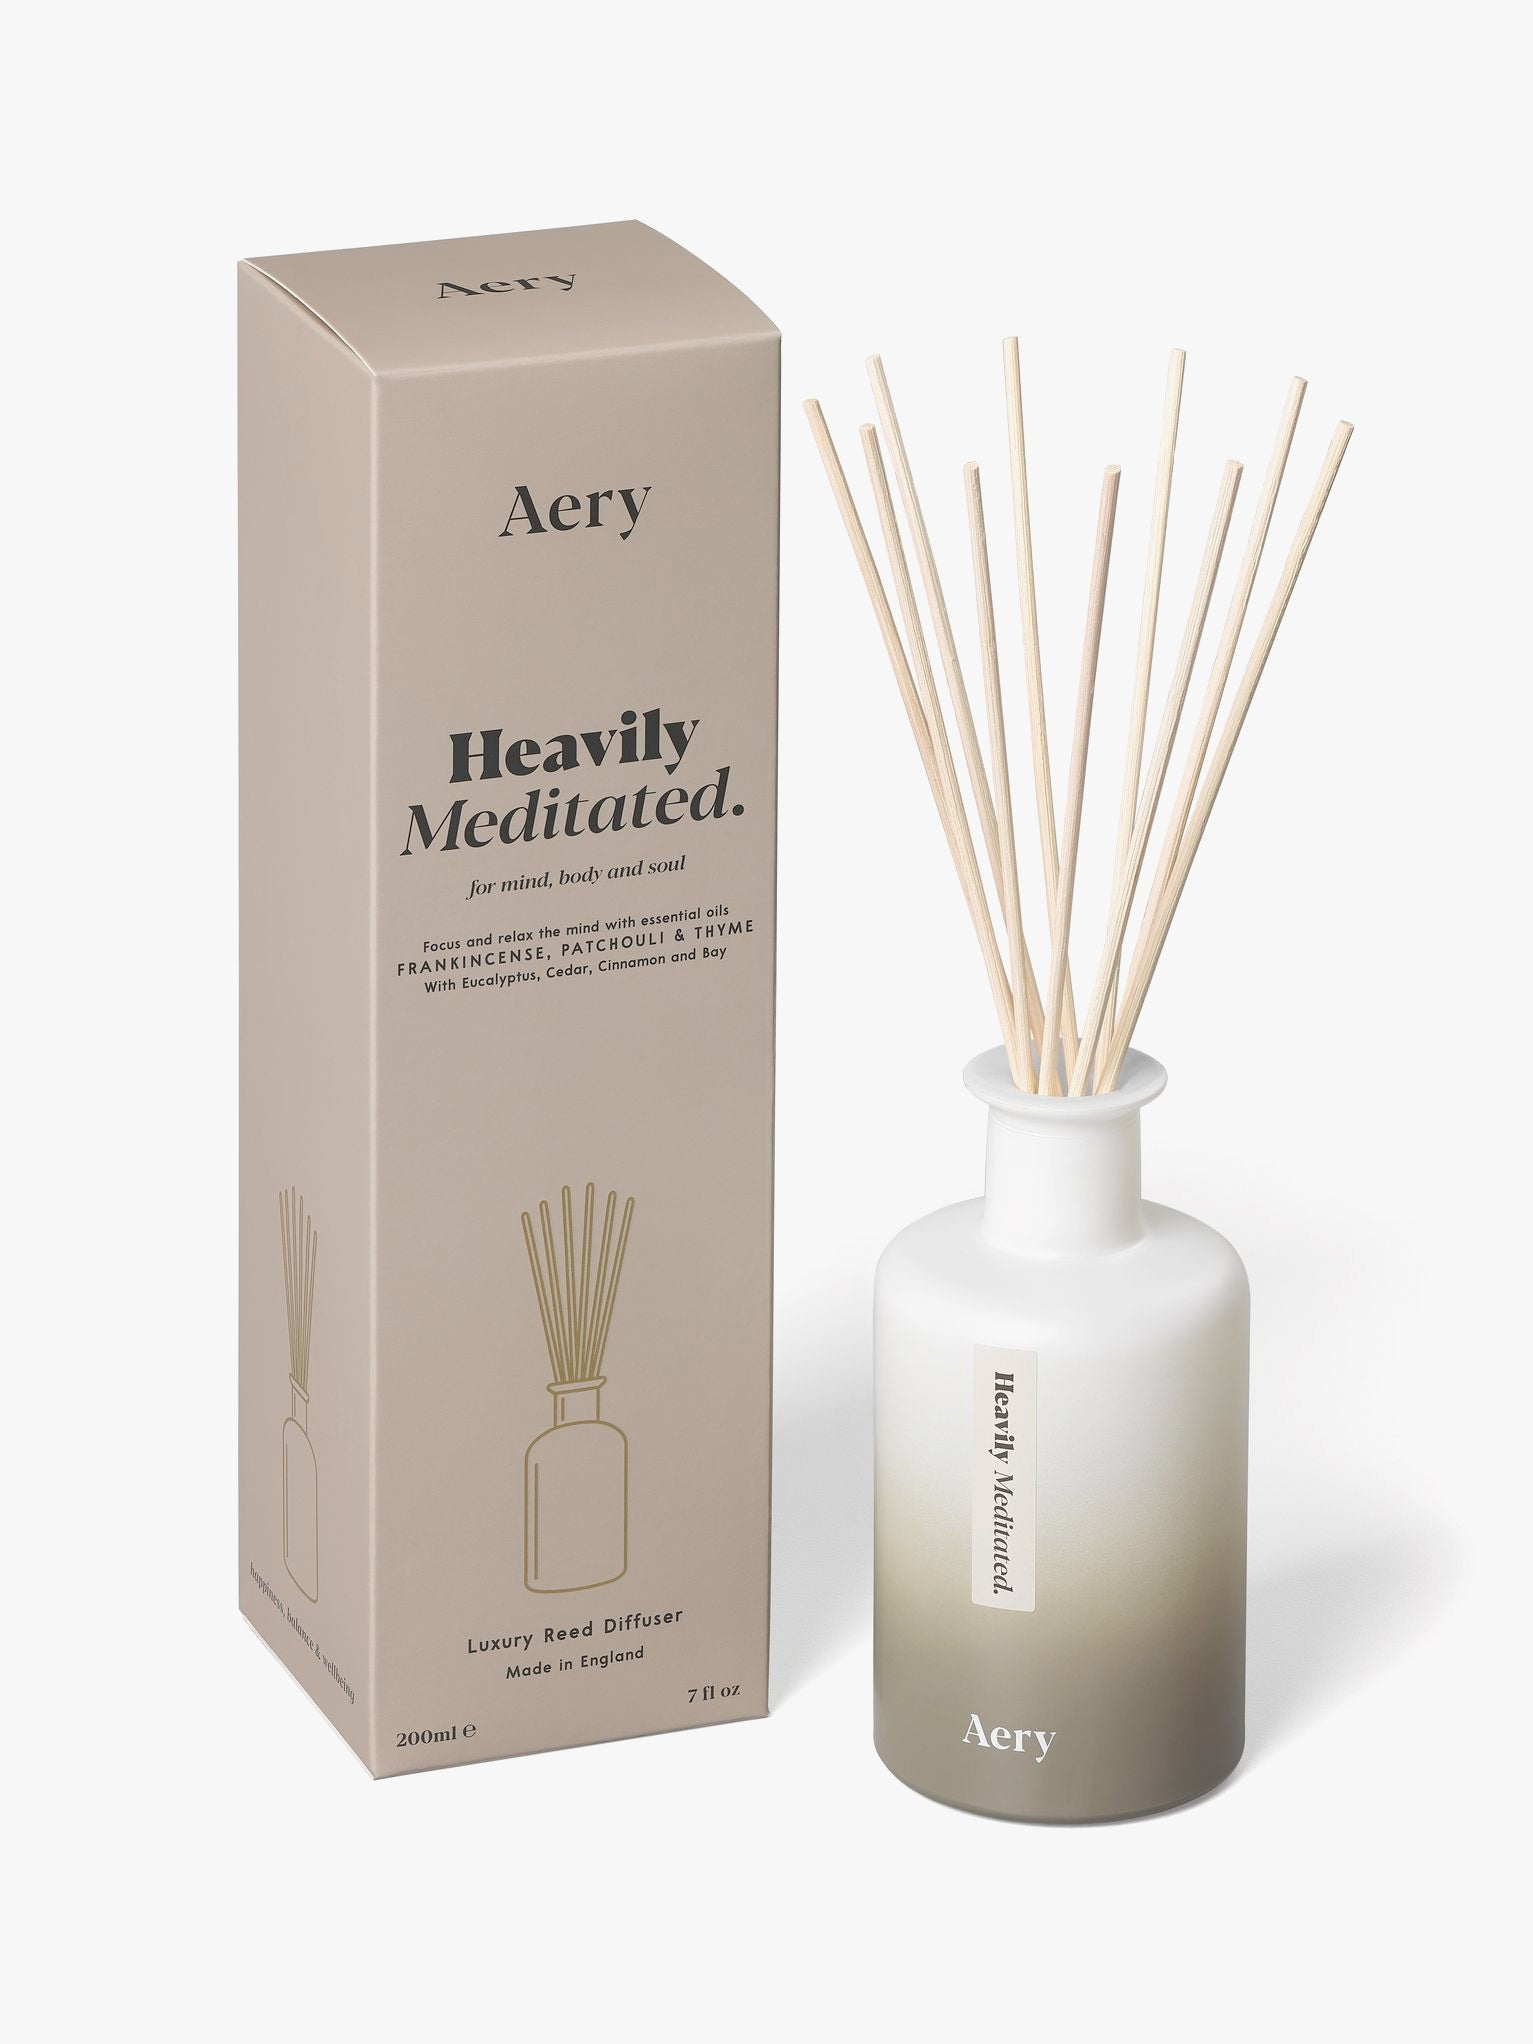 Aery Aromatherapy Reed Diffuser - Heavily Meditated